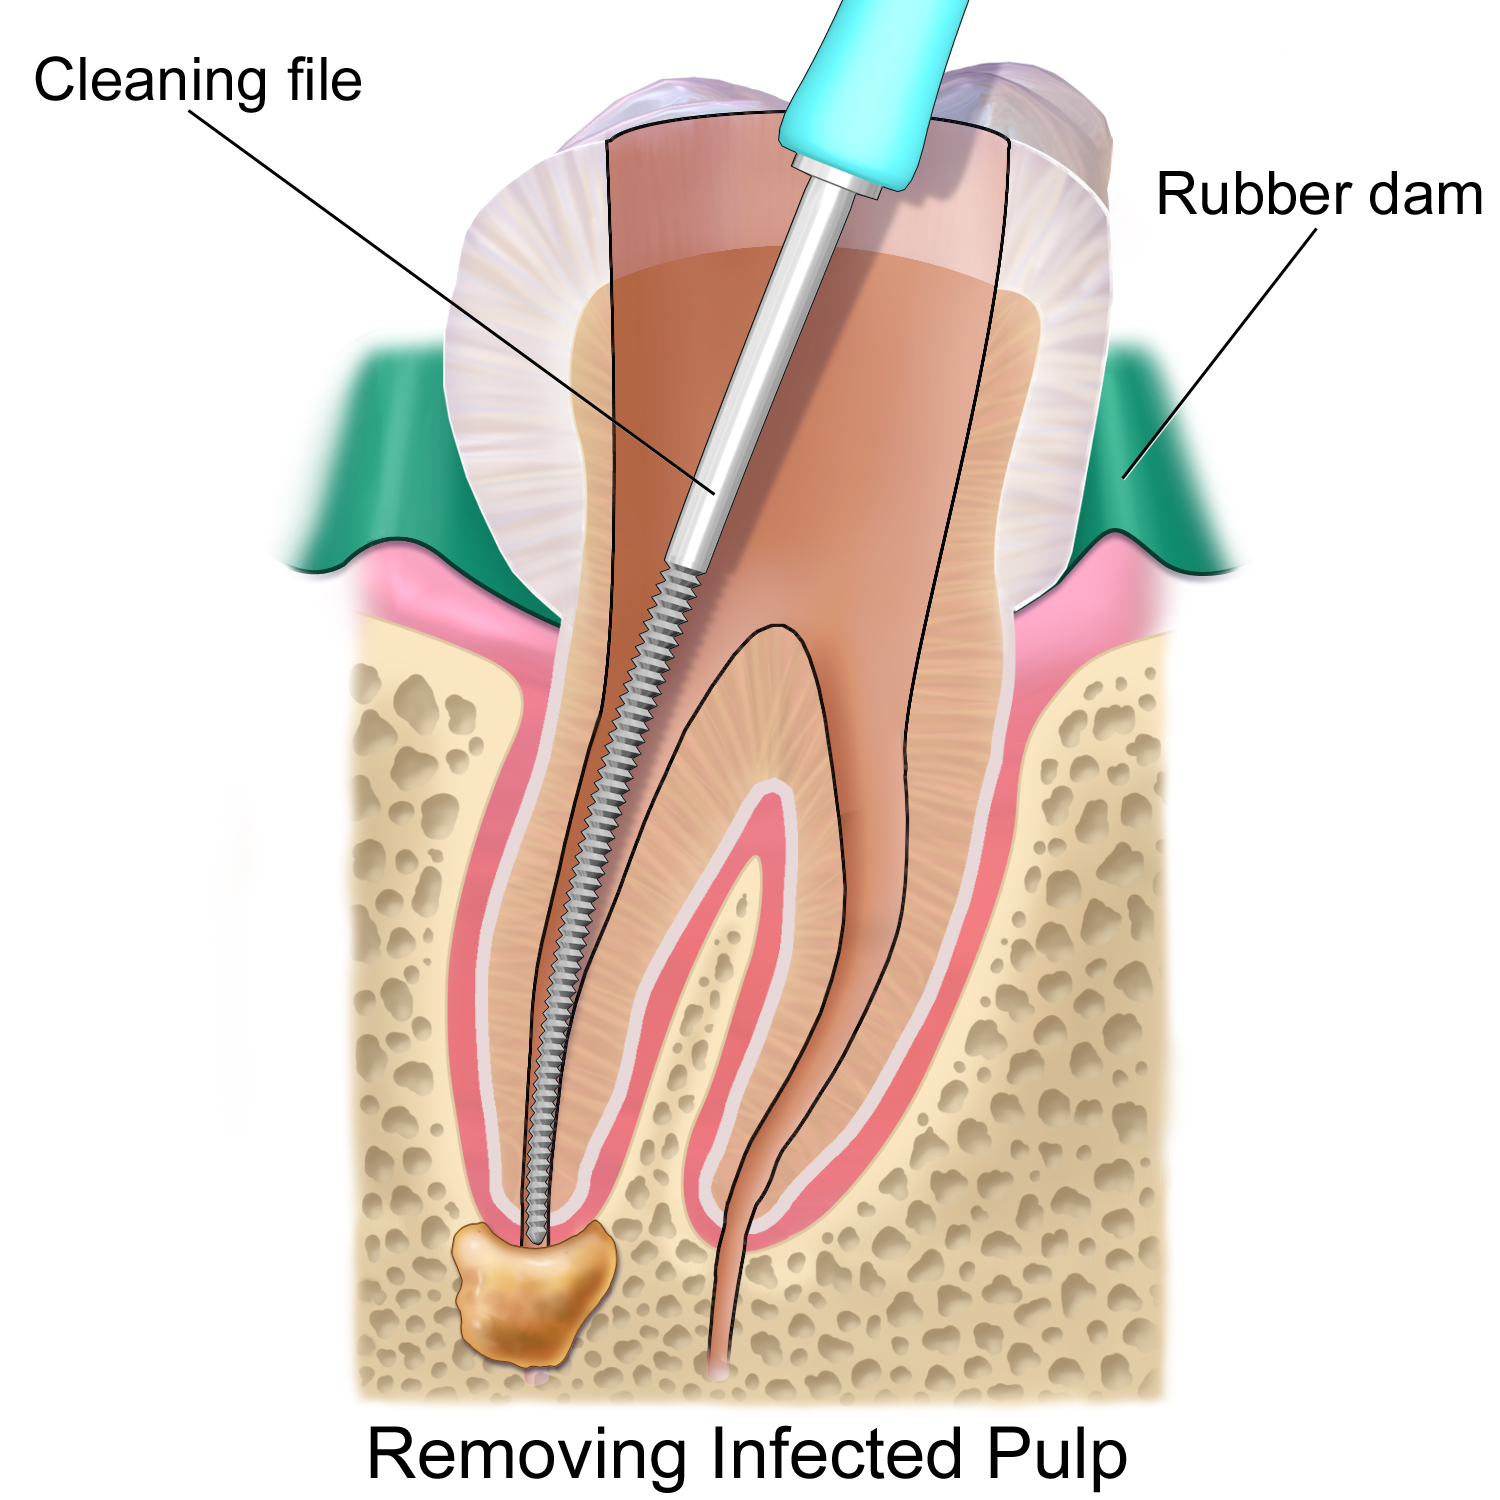 http://drmahendras.com/treatments/periodontal-surgery-gum-surgery/